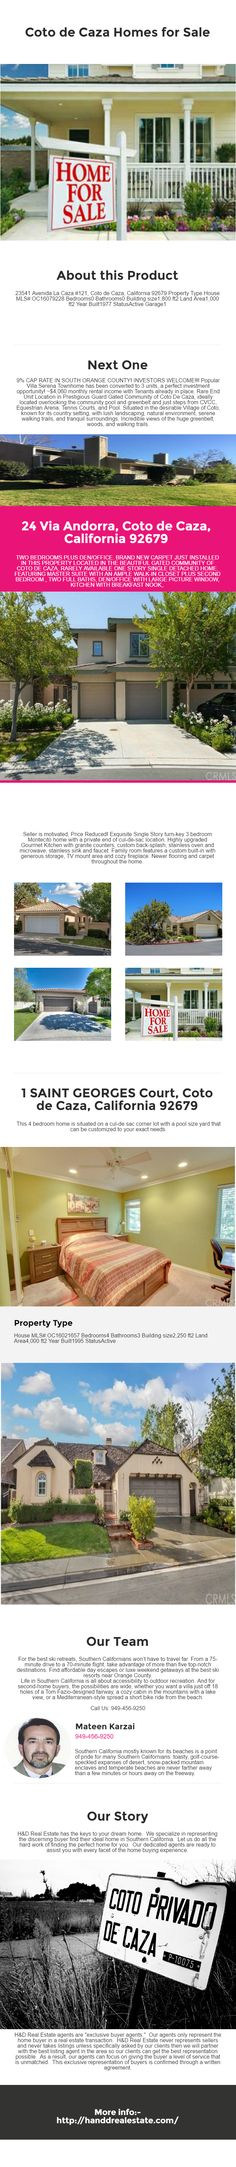 9% CAP RATE IN SOUTH ORANGE COUNTY! INVESTORS WELCOME!!! Popular Villa Serena Townhome has been converted to 3 units, a perfect investment opportunity! ~$4,060 monthly rental income with Tenants already in place. Rare End Unit Location in Prestigious Guard Gated Community of Coto De Caza,  #California_Luxury_Homes_for_Sale #Coto_de_Caza_Homes_for_Sale #Dana_Point_Homes_foe_sale  http://www.handdrealestate.com/coto-de-caza-homes-for-sale-listings.php